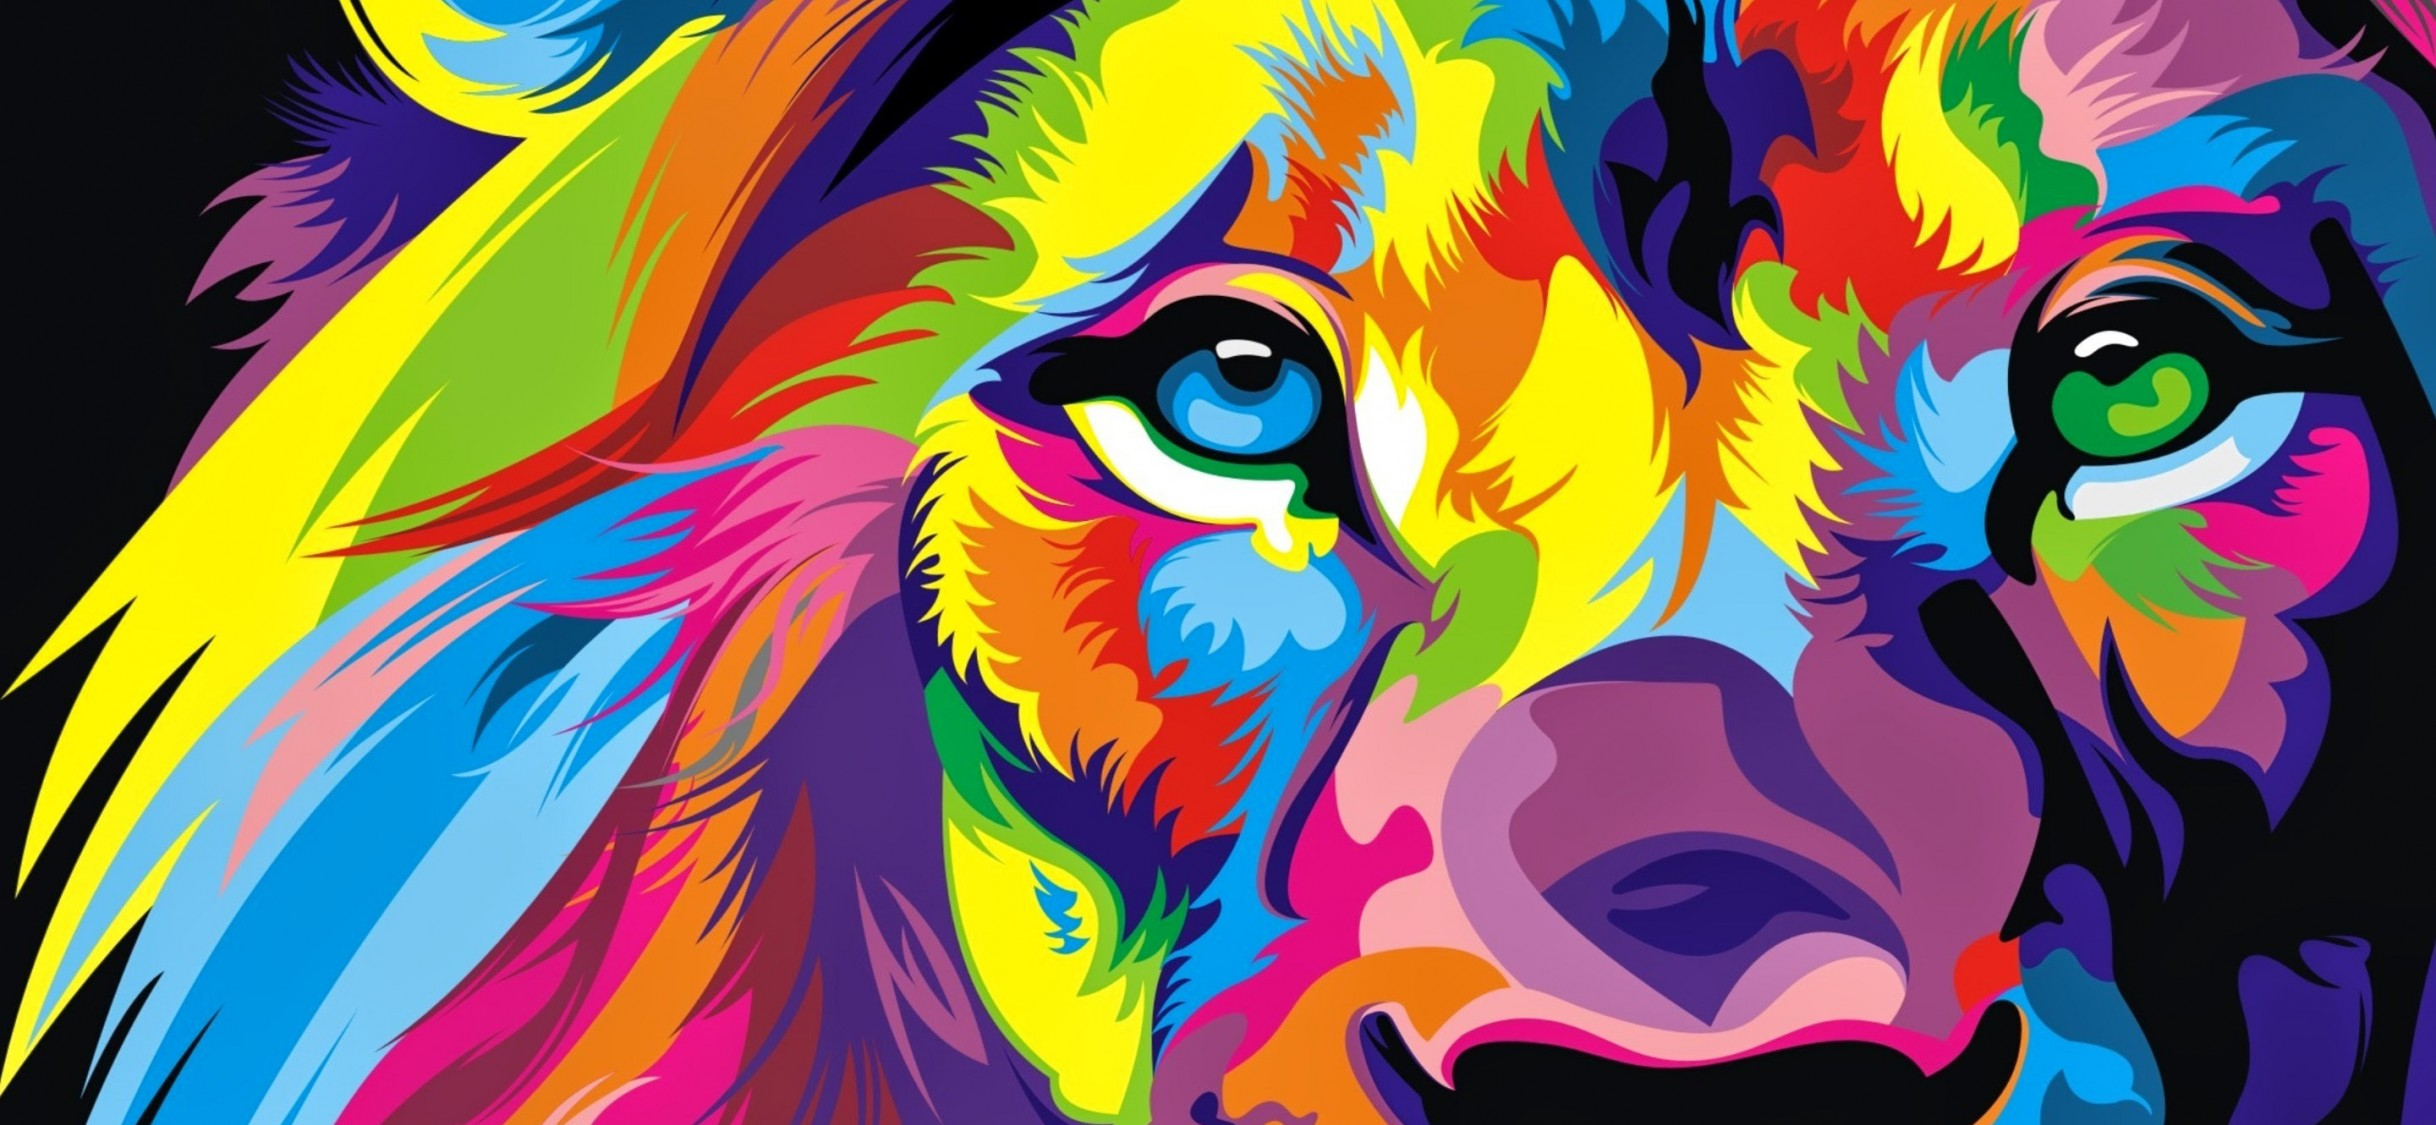 Download Full Hd Colourful Lion Artwork Wallpaper Iphone X